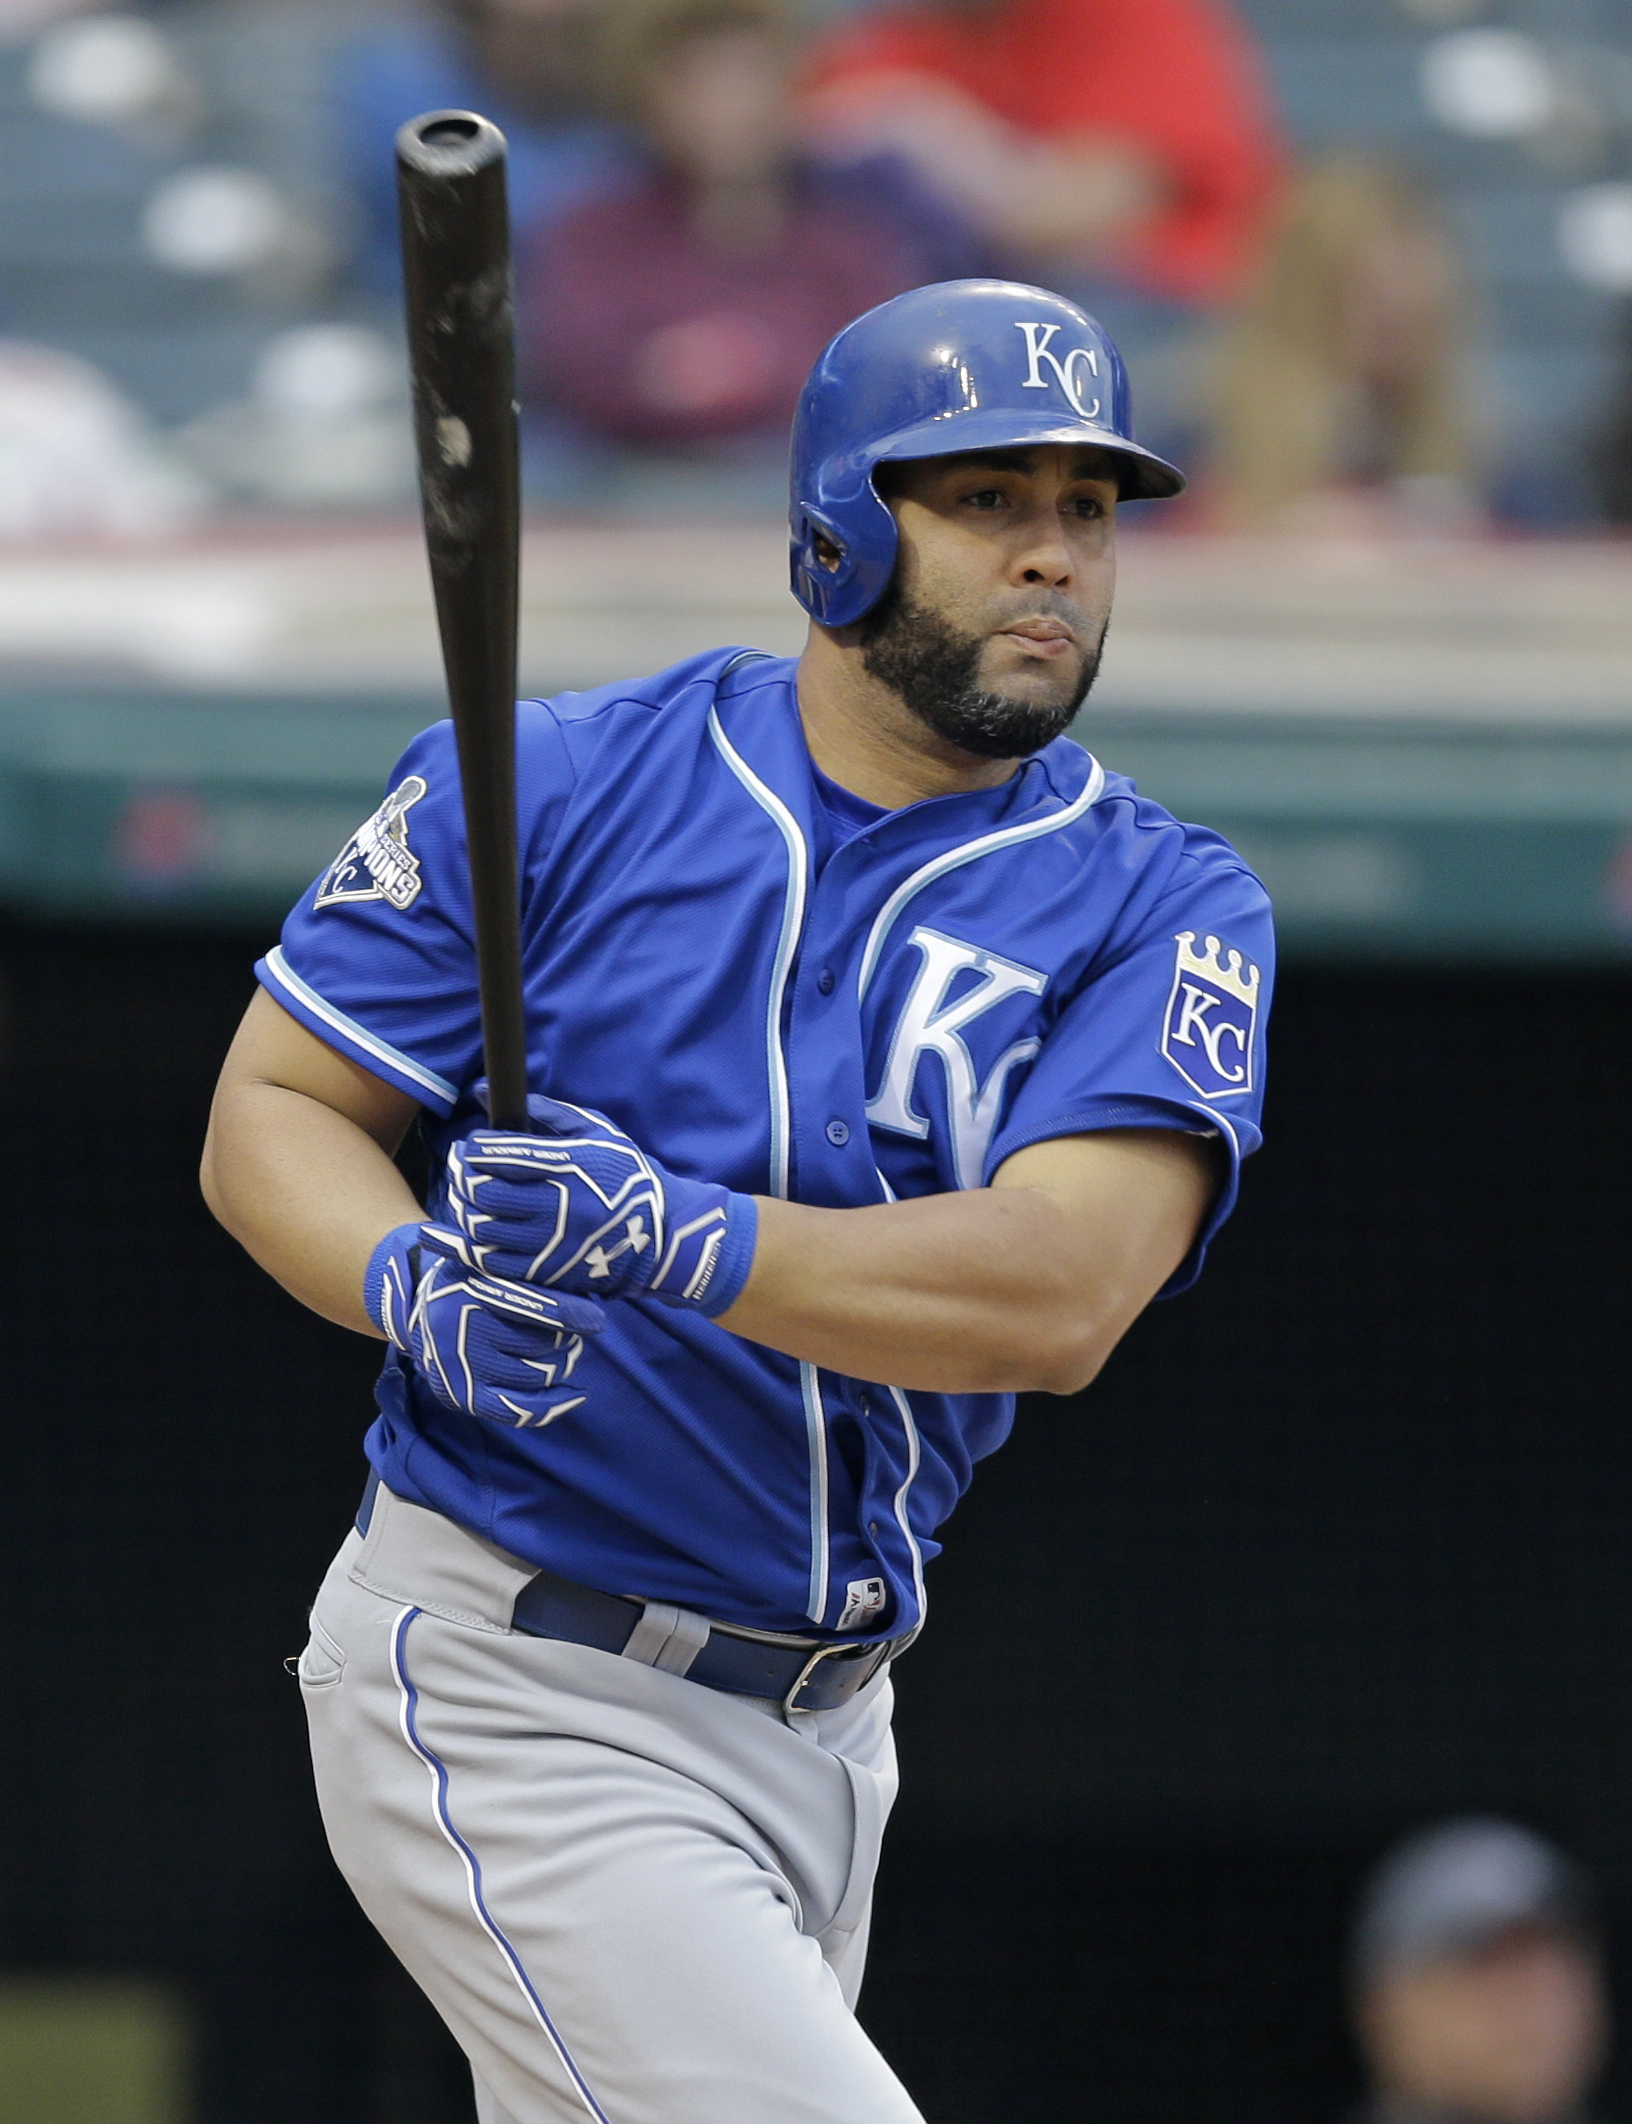 Kansas City Royals' Kendrys Morales watches his RBI-single off Cleveland Indians relief pitcher Jeff Manship in the eighth inning of a baseball game, Saturday, May 7, 2016, in Cleveland. Lorenzo Cain scored on the play. (AP Photo/Tony Dejak)